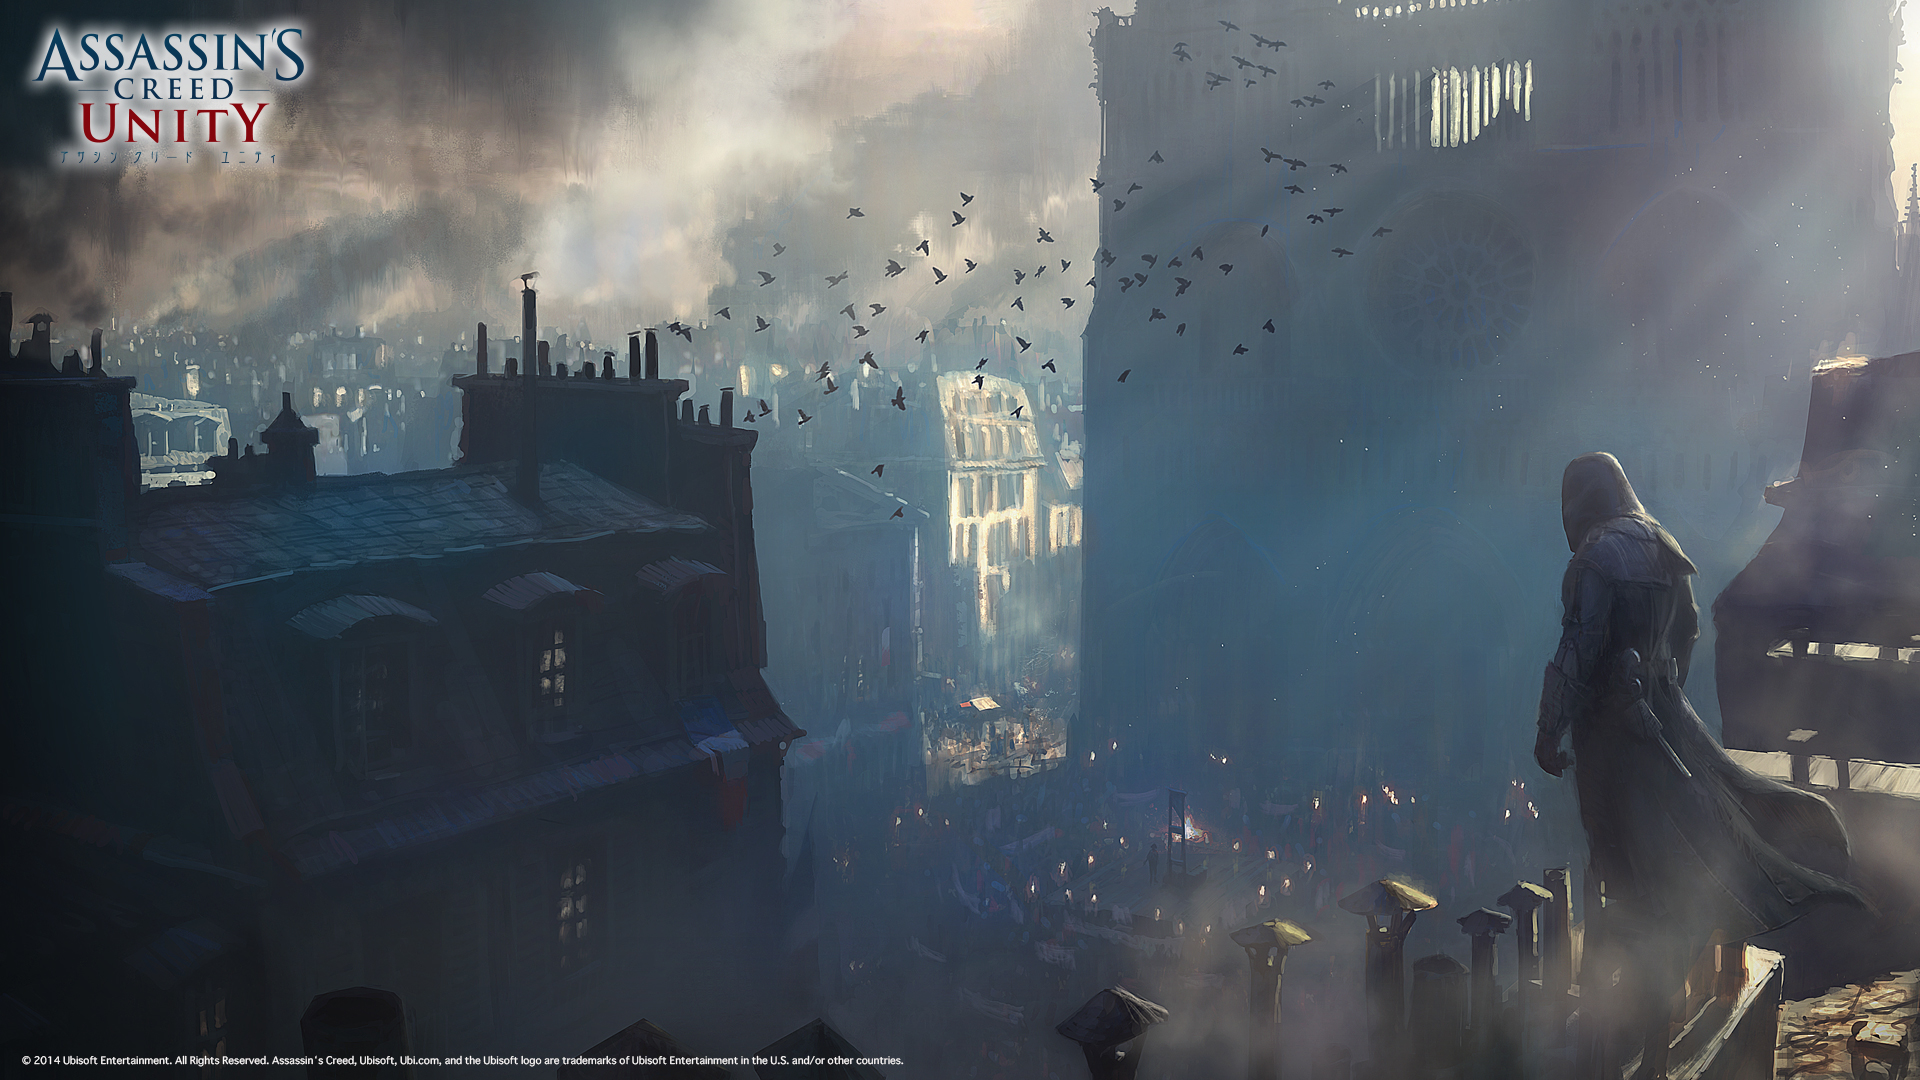 Assassins creed unity pc 19201080 voltagebd Gallery